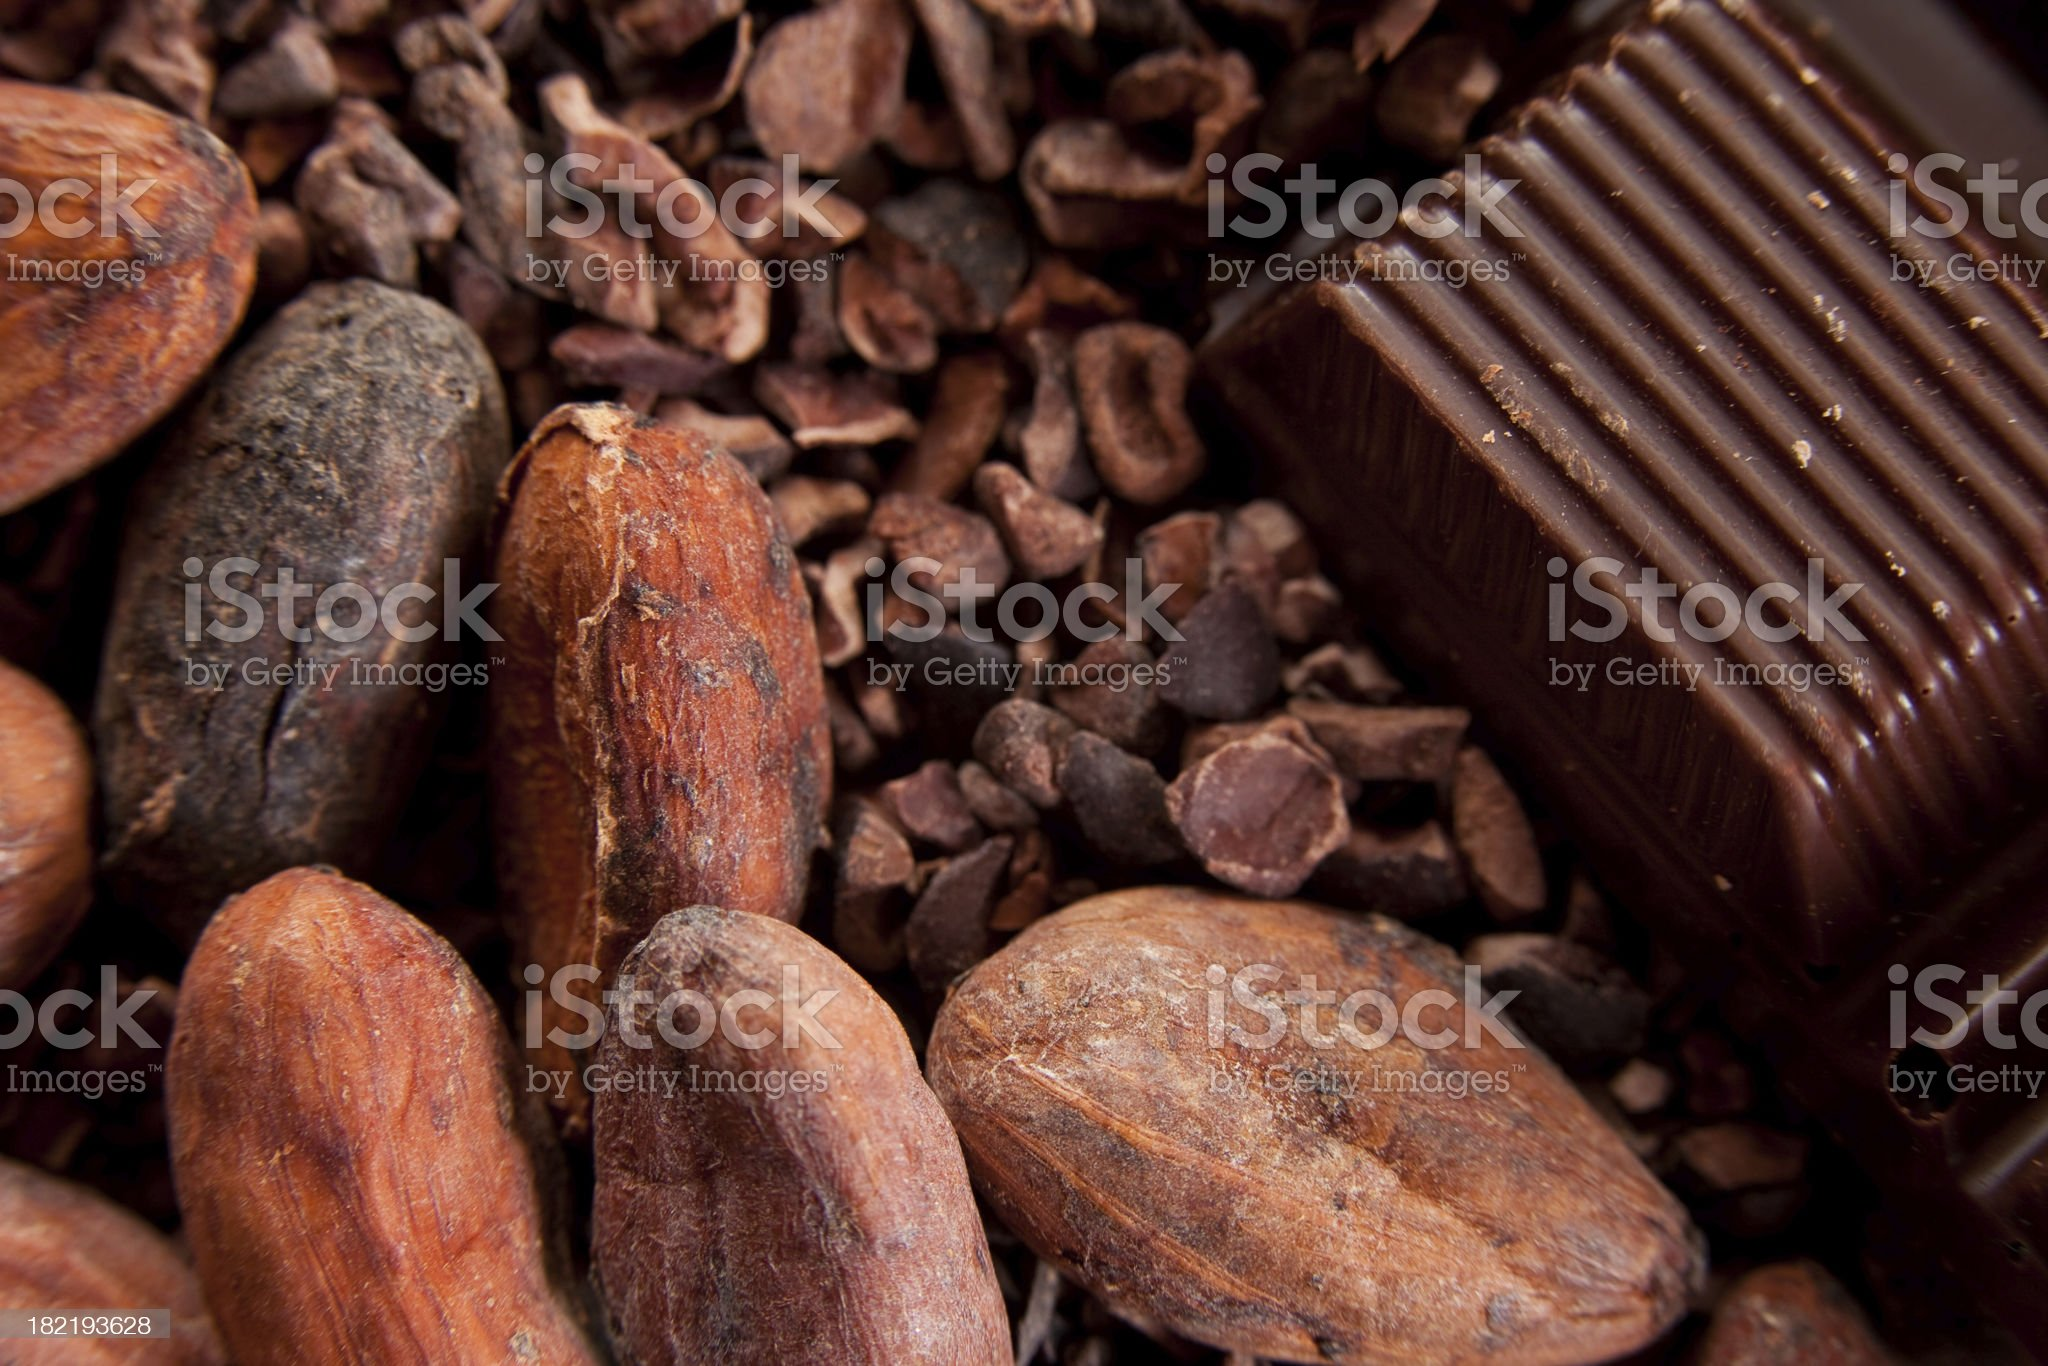 Cocoa beans and chocolate bar royalty-free stock photo